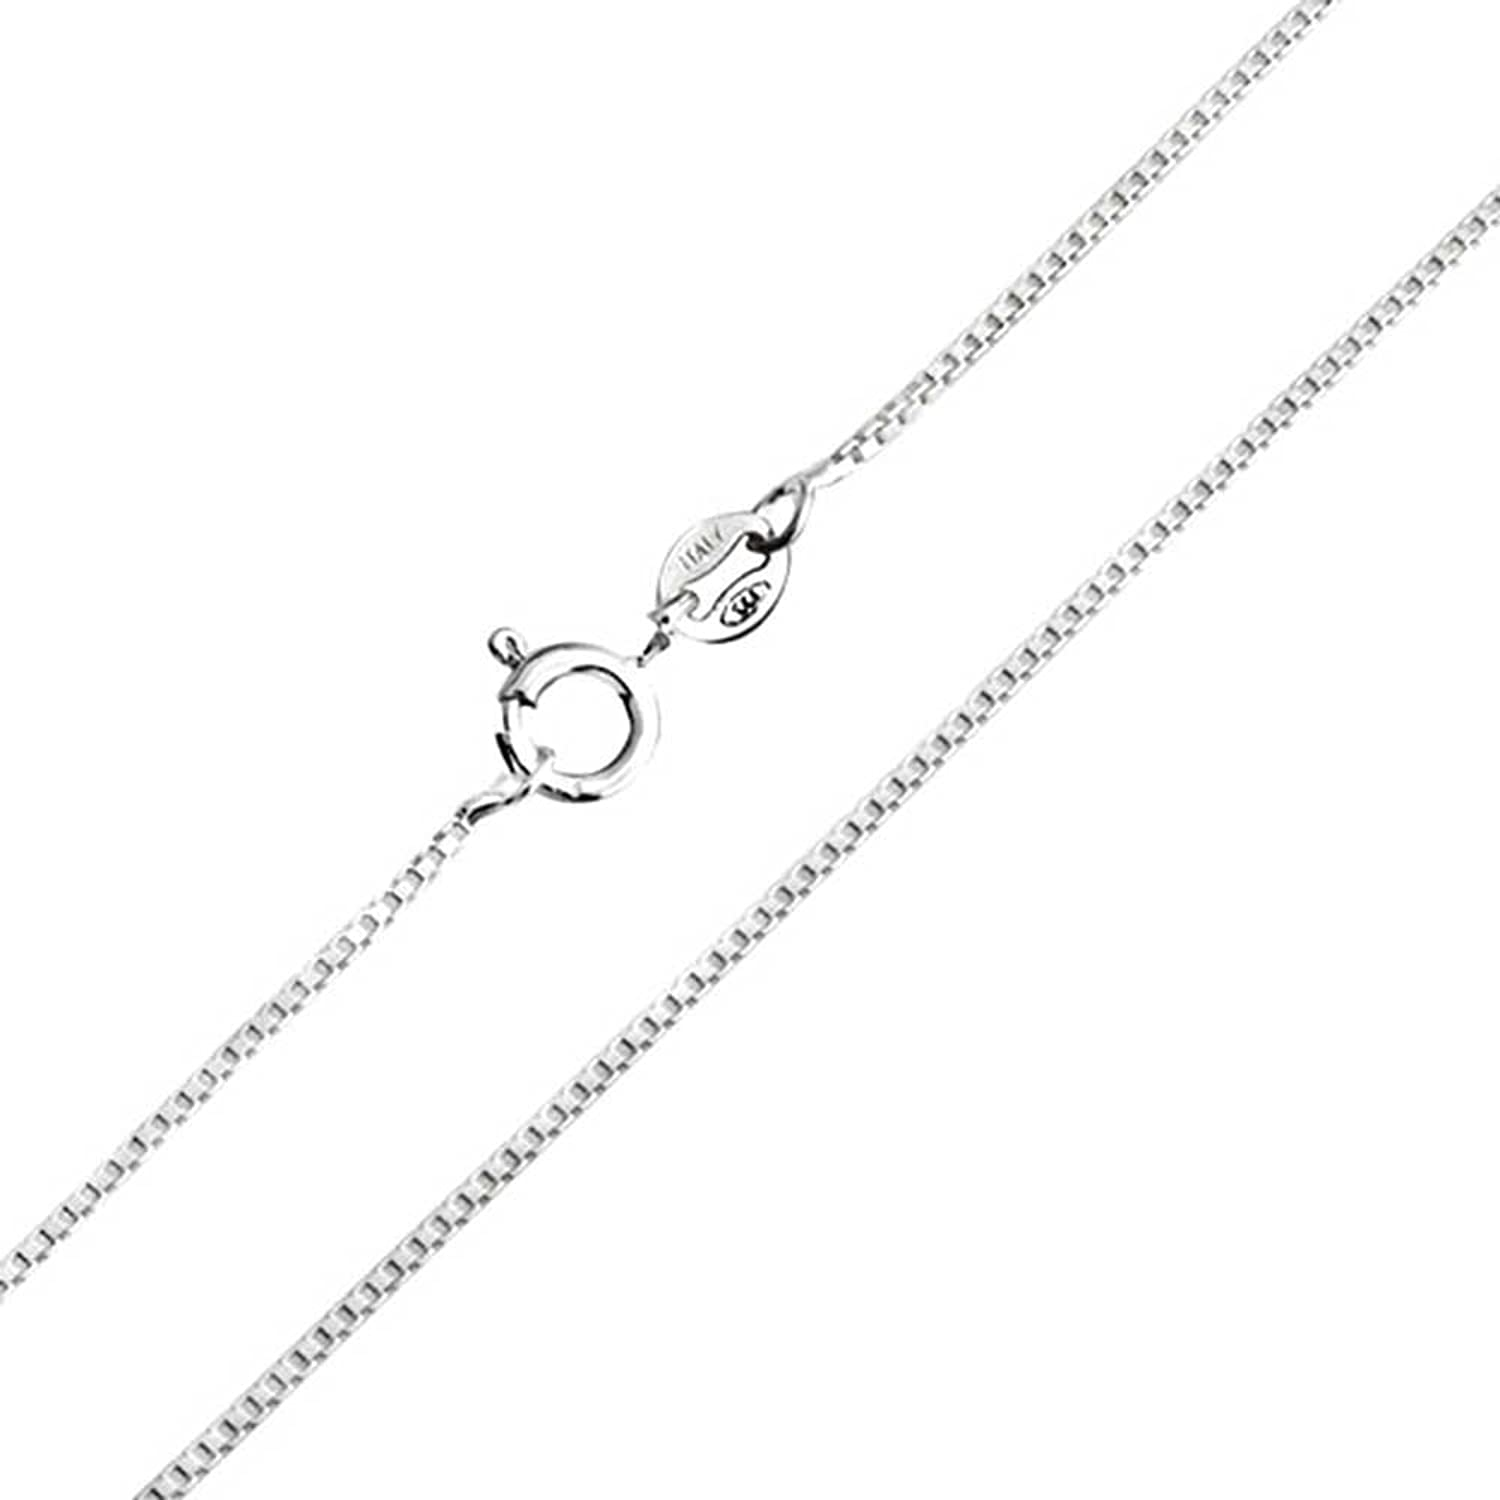 Sterling SIlver Chain for Children - 4 to 12 years old - Length: 14 inch / 36 cm jutvpE39